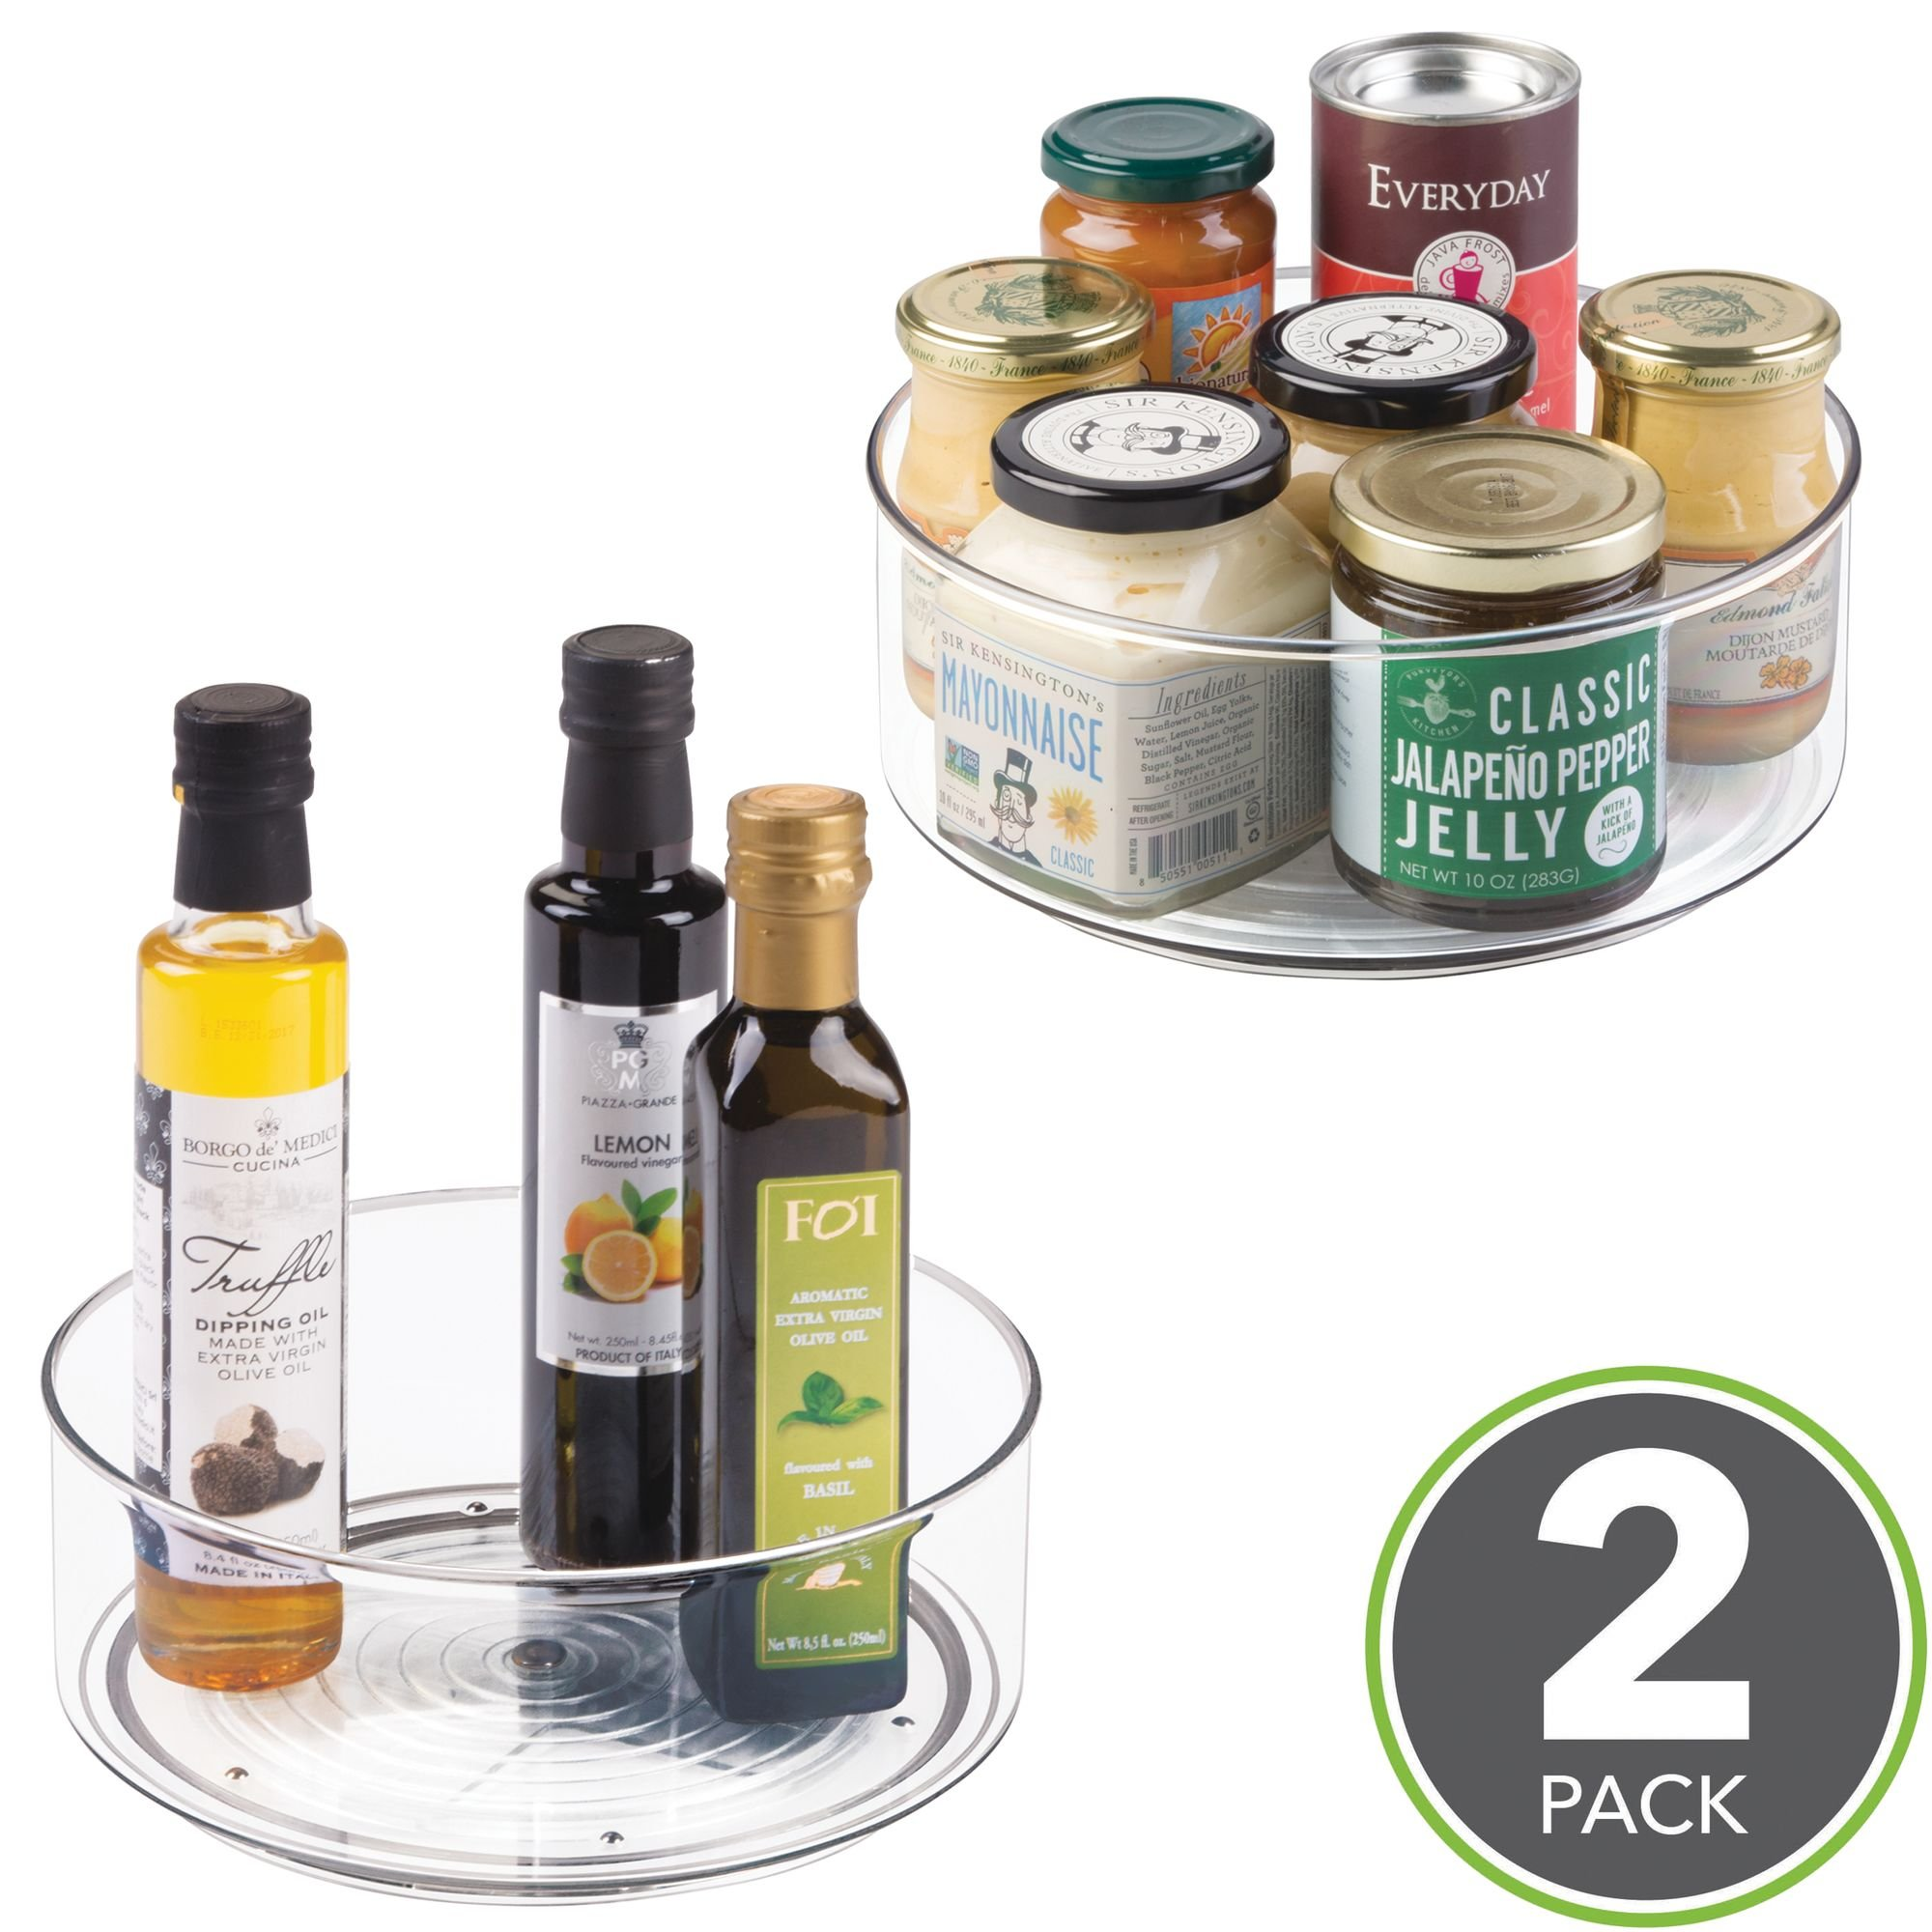 mDesign Lazy Susan Turntable Food Storage Container for Cabinets, Pantry, Refrigerator, Countertops, BPA Free - Spinning Organizer for Spices, Condiments, Baking Supplies - 9'' Round, Pack of 2, Clear